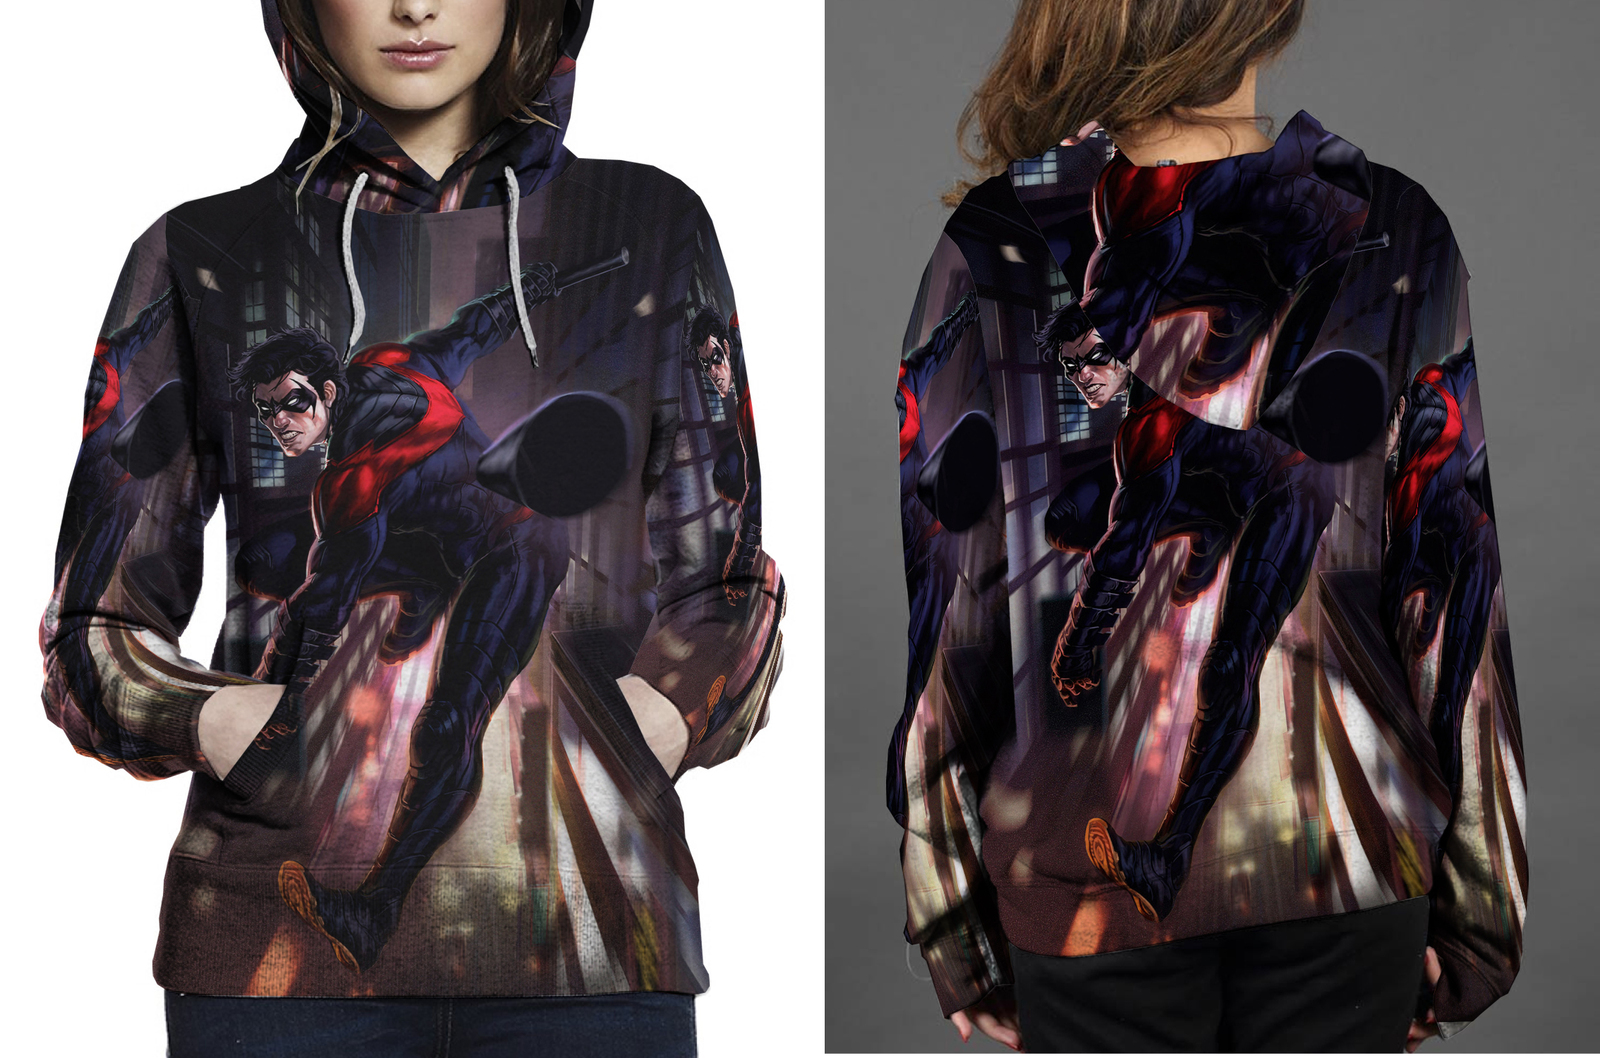 Nightwing action hoodie women s